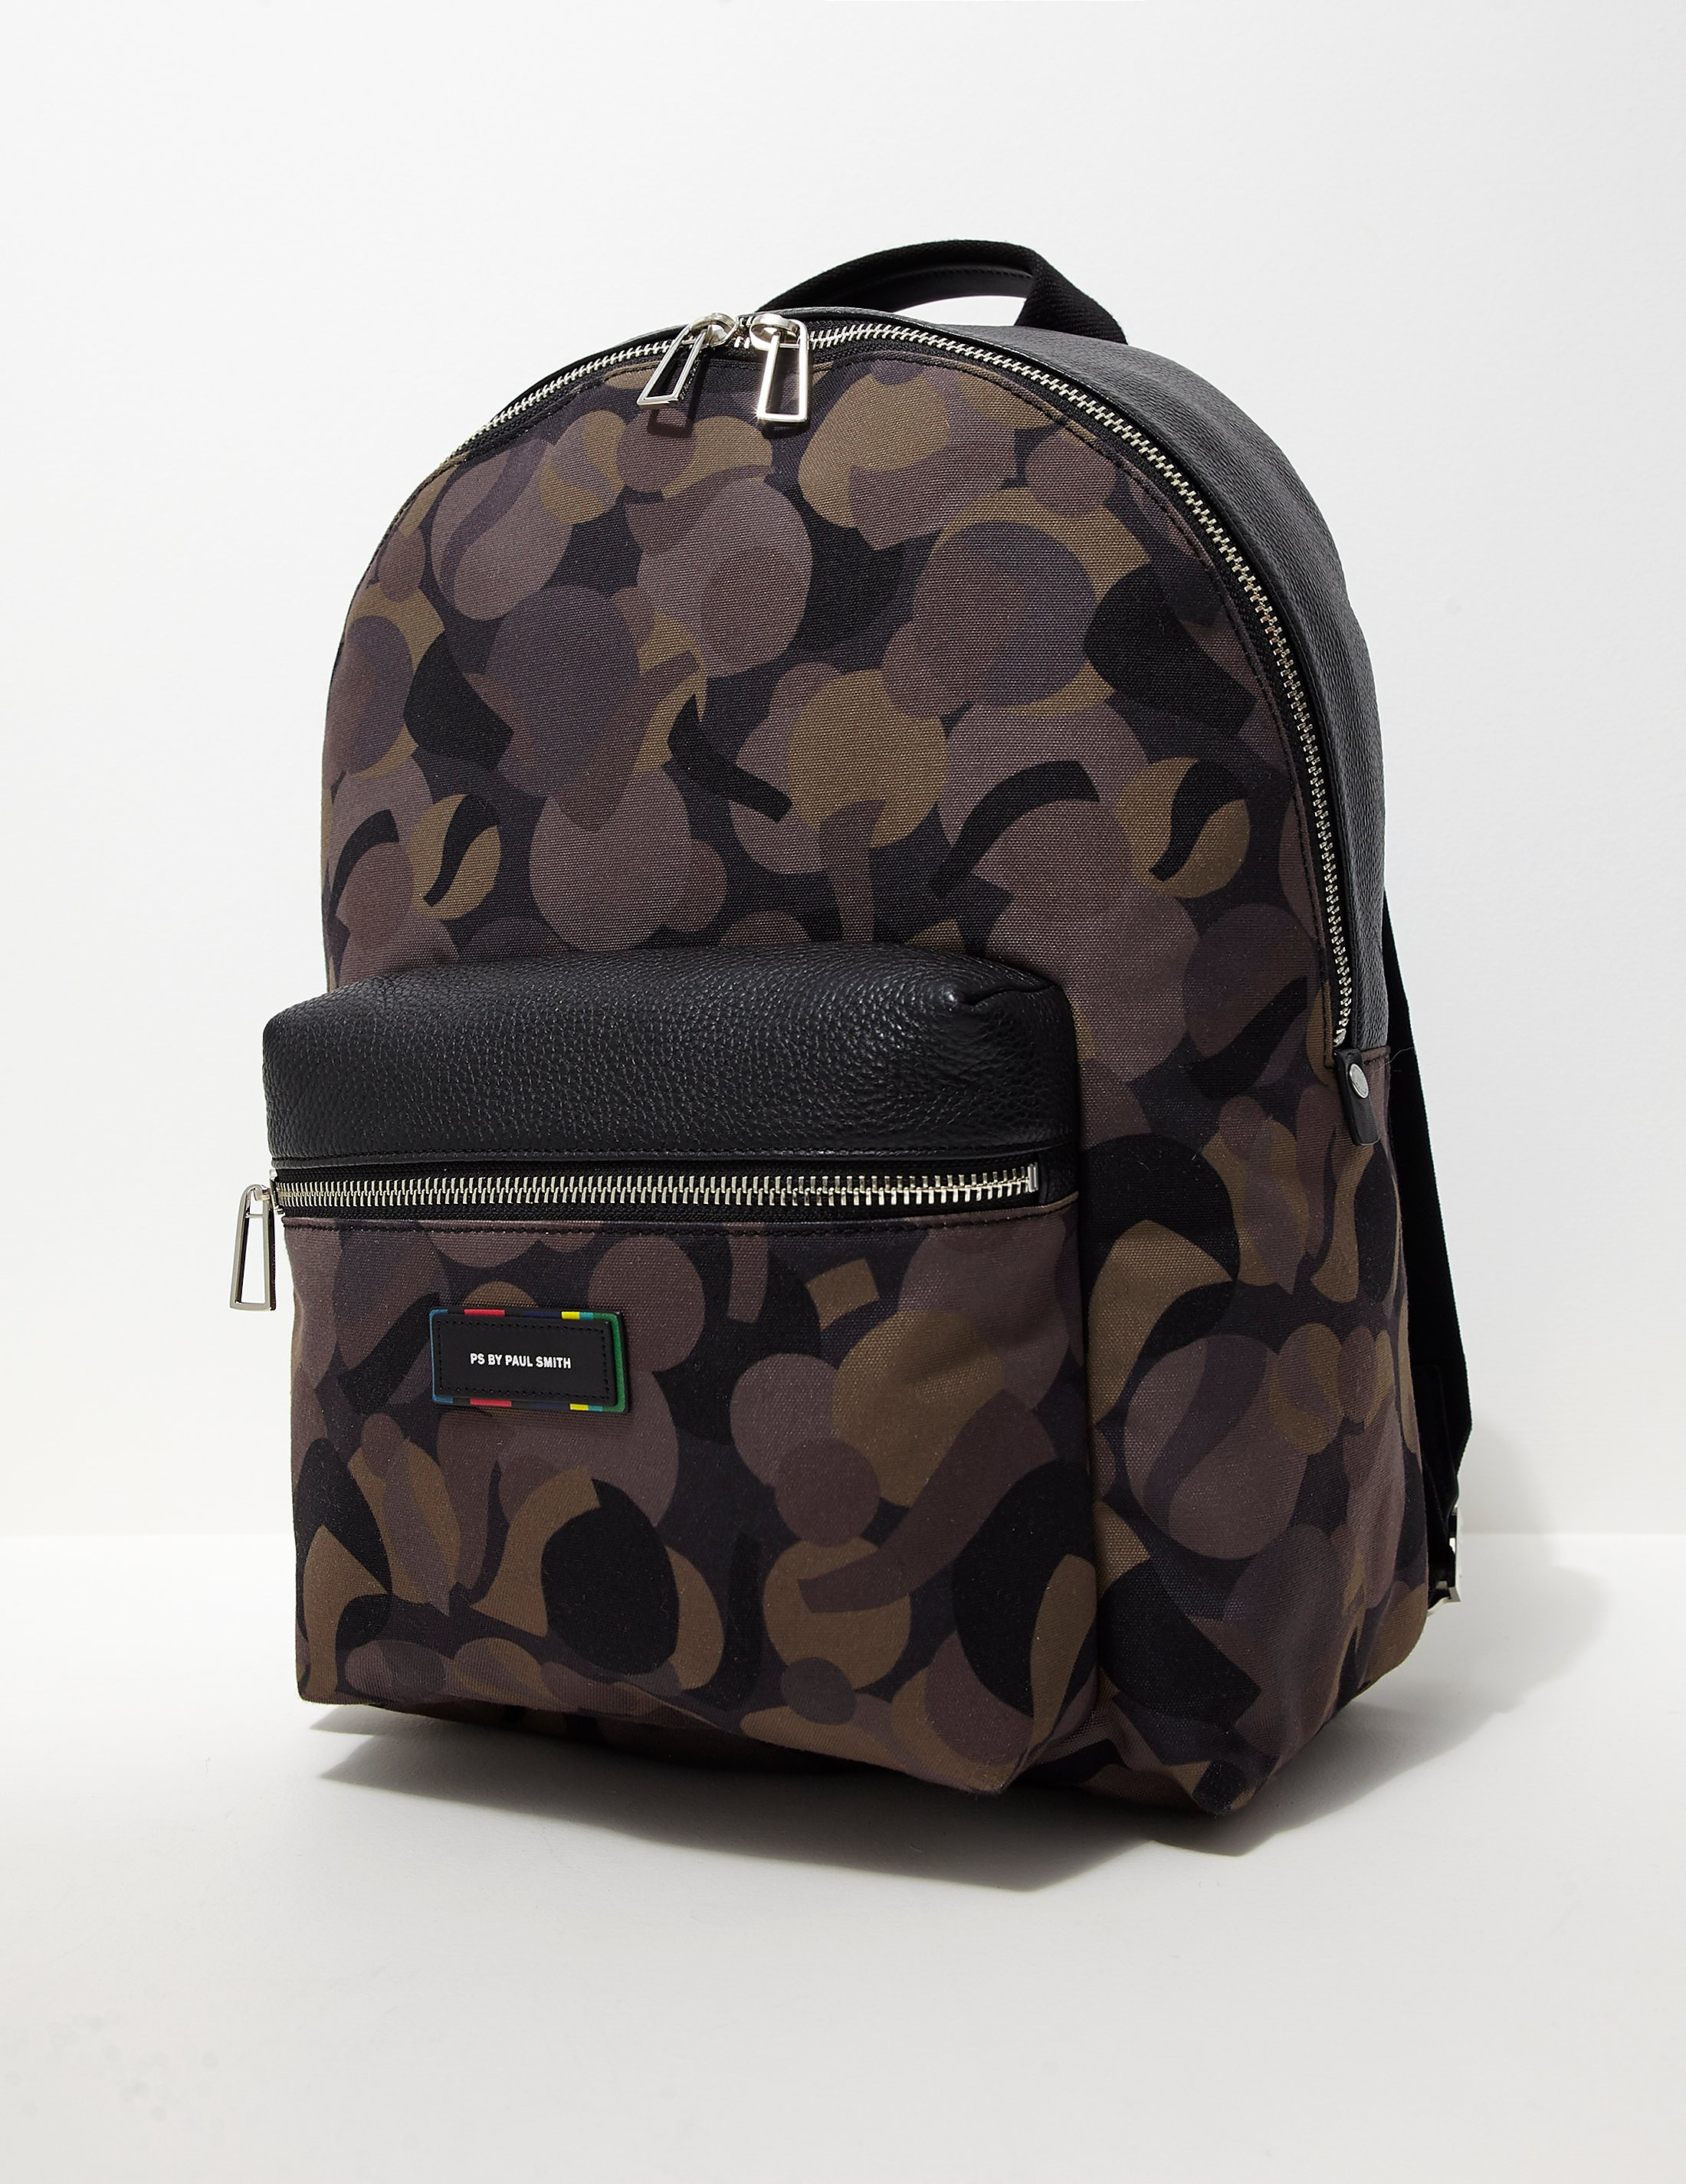 Paul Smith Camoflauge Backpack - Online Exclusive